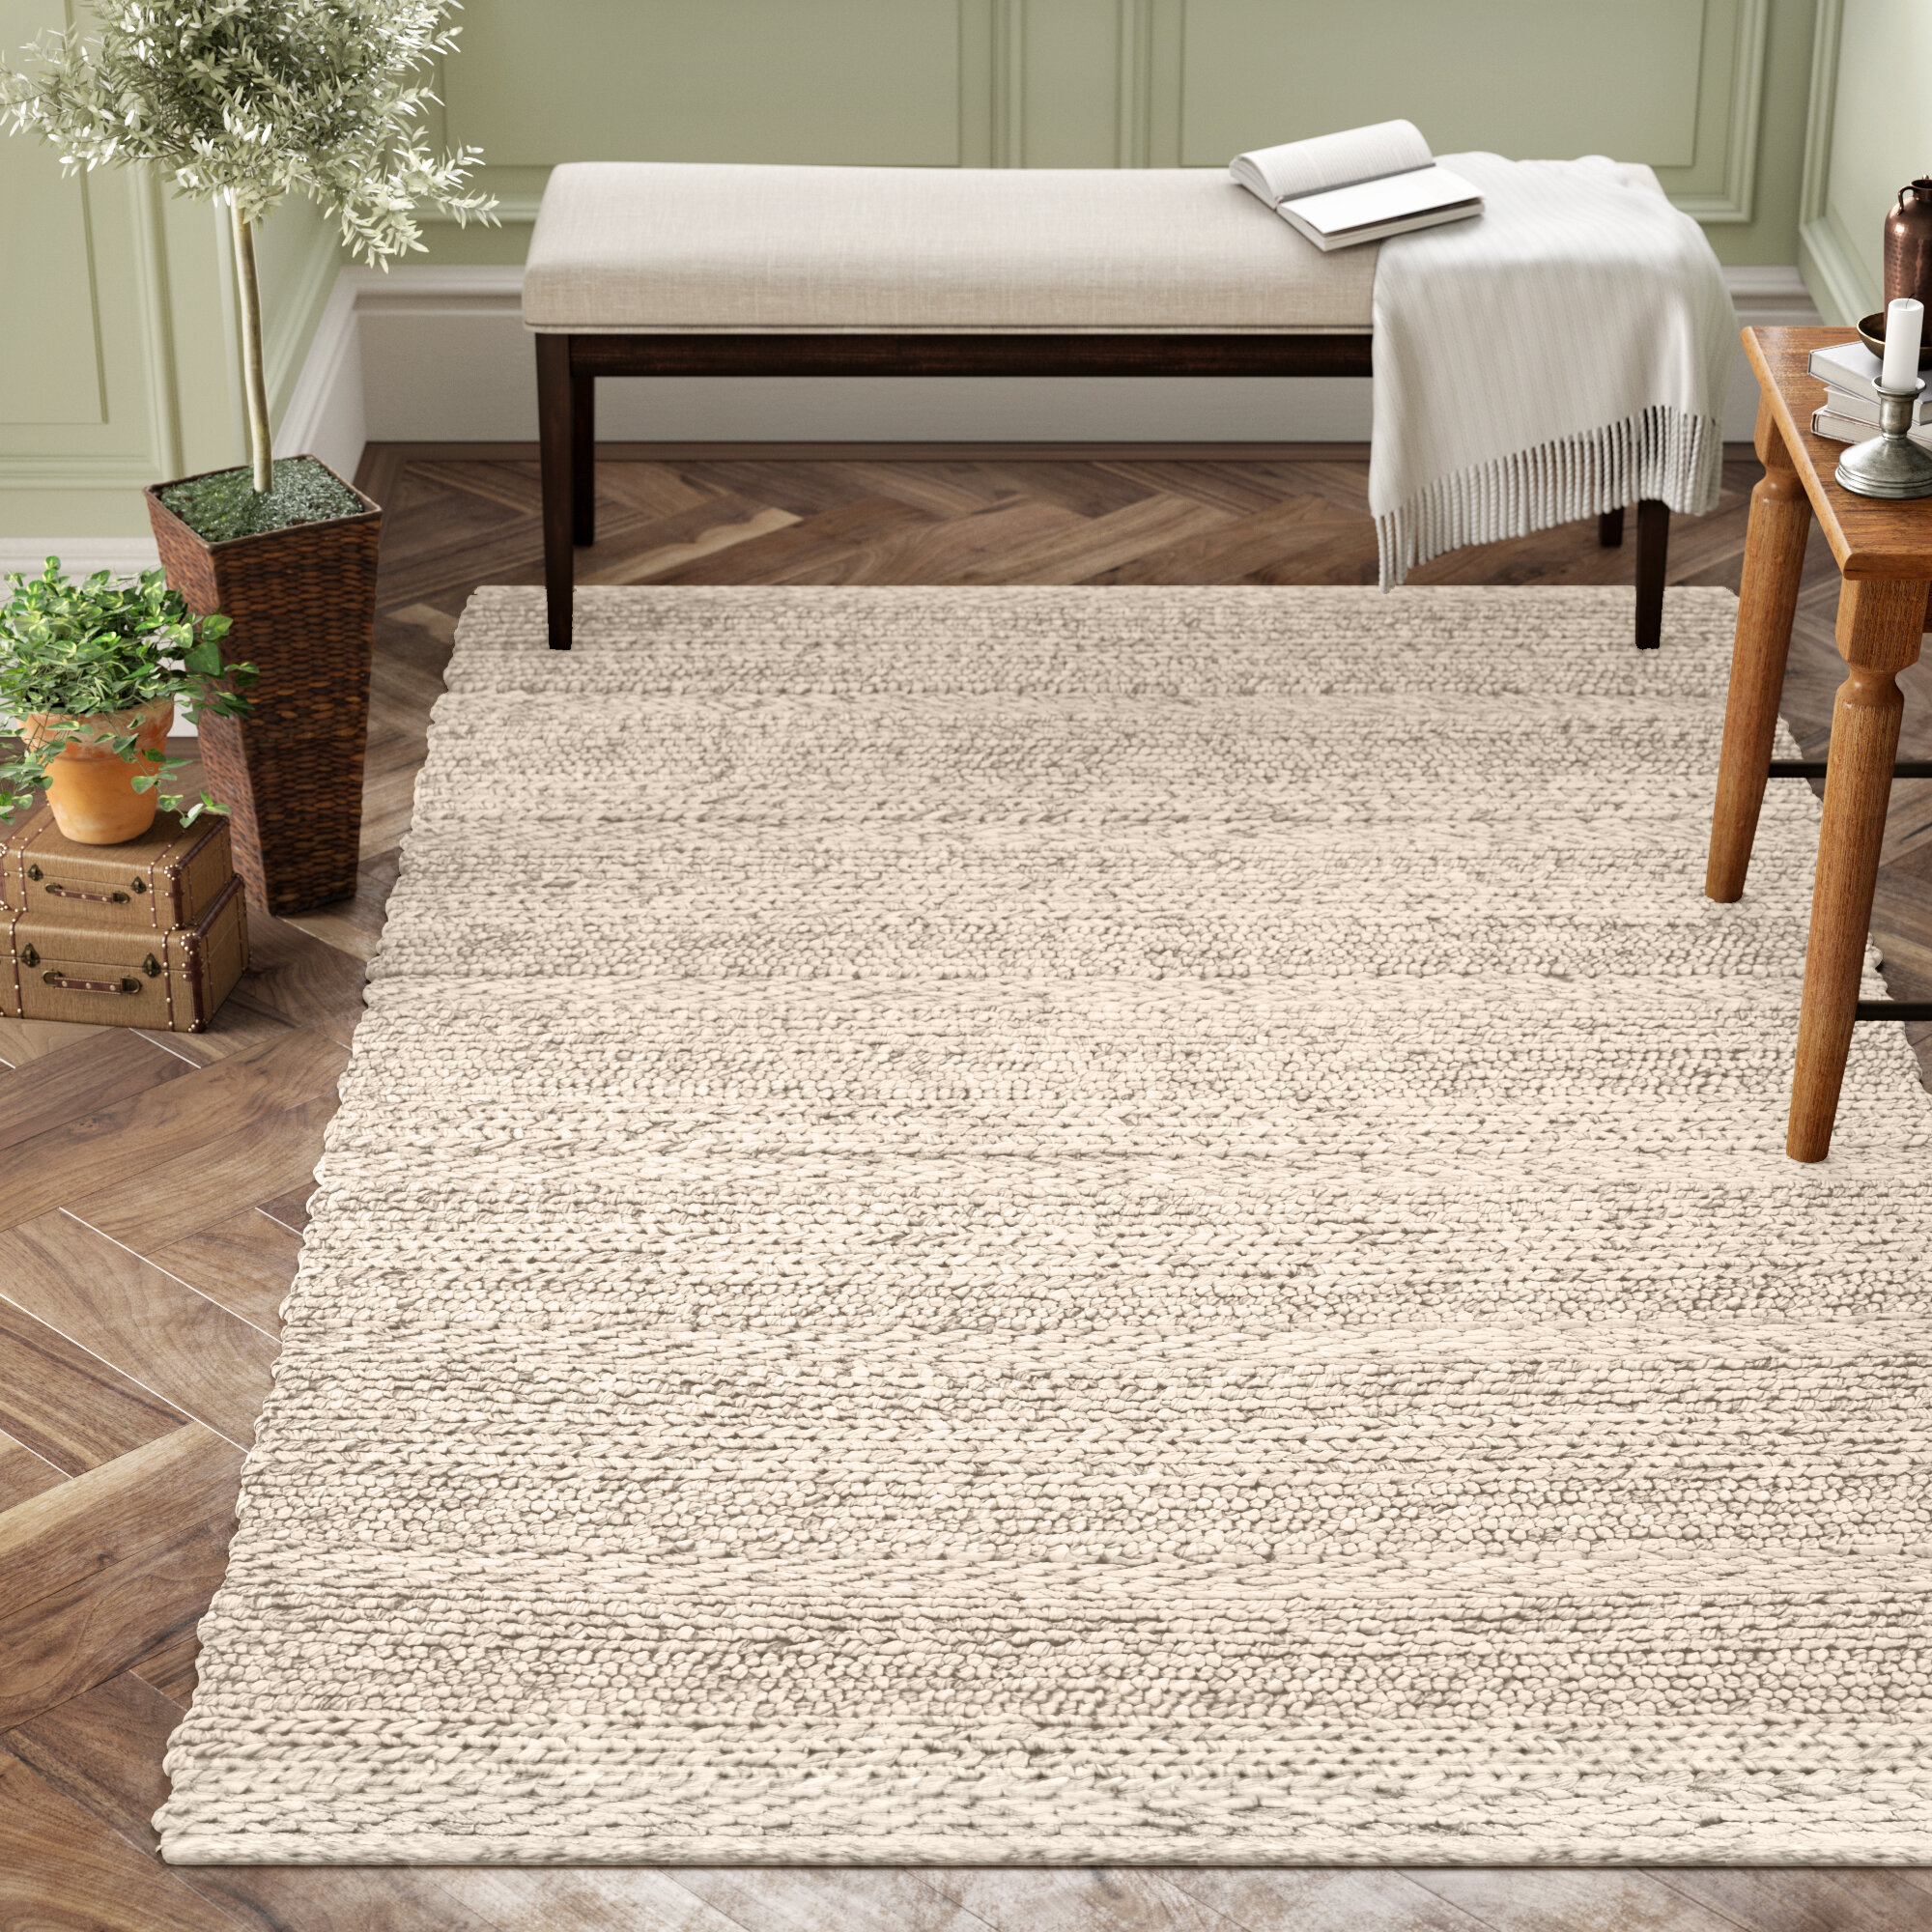 Beachcrest Home Othello Handwoven Wool Cream Rug Reviews Wayfair